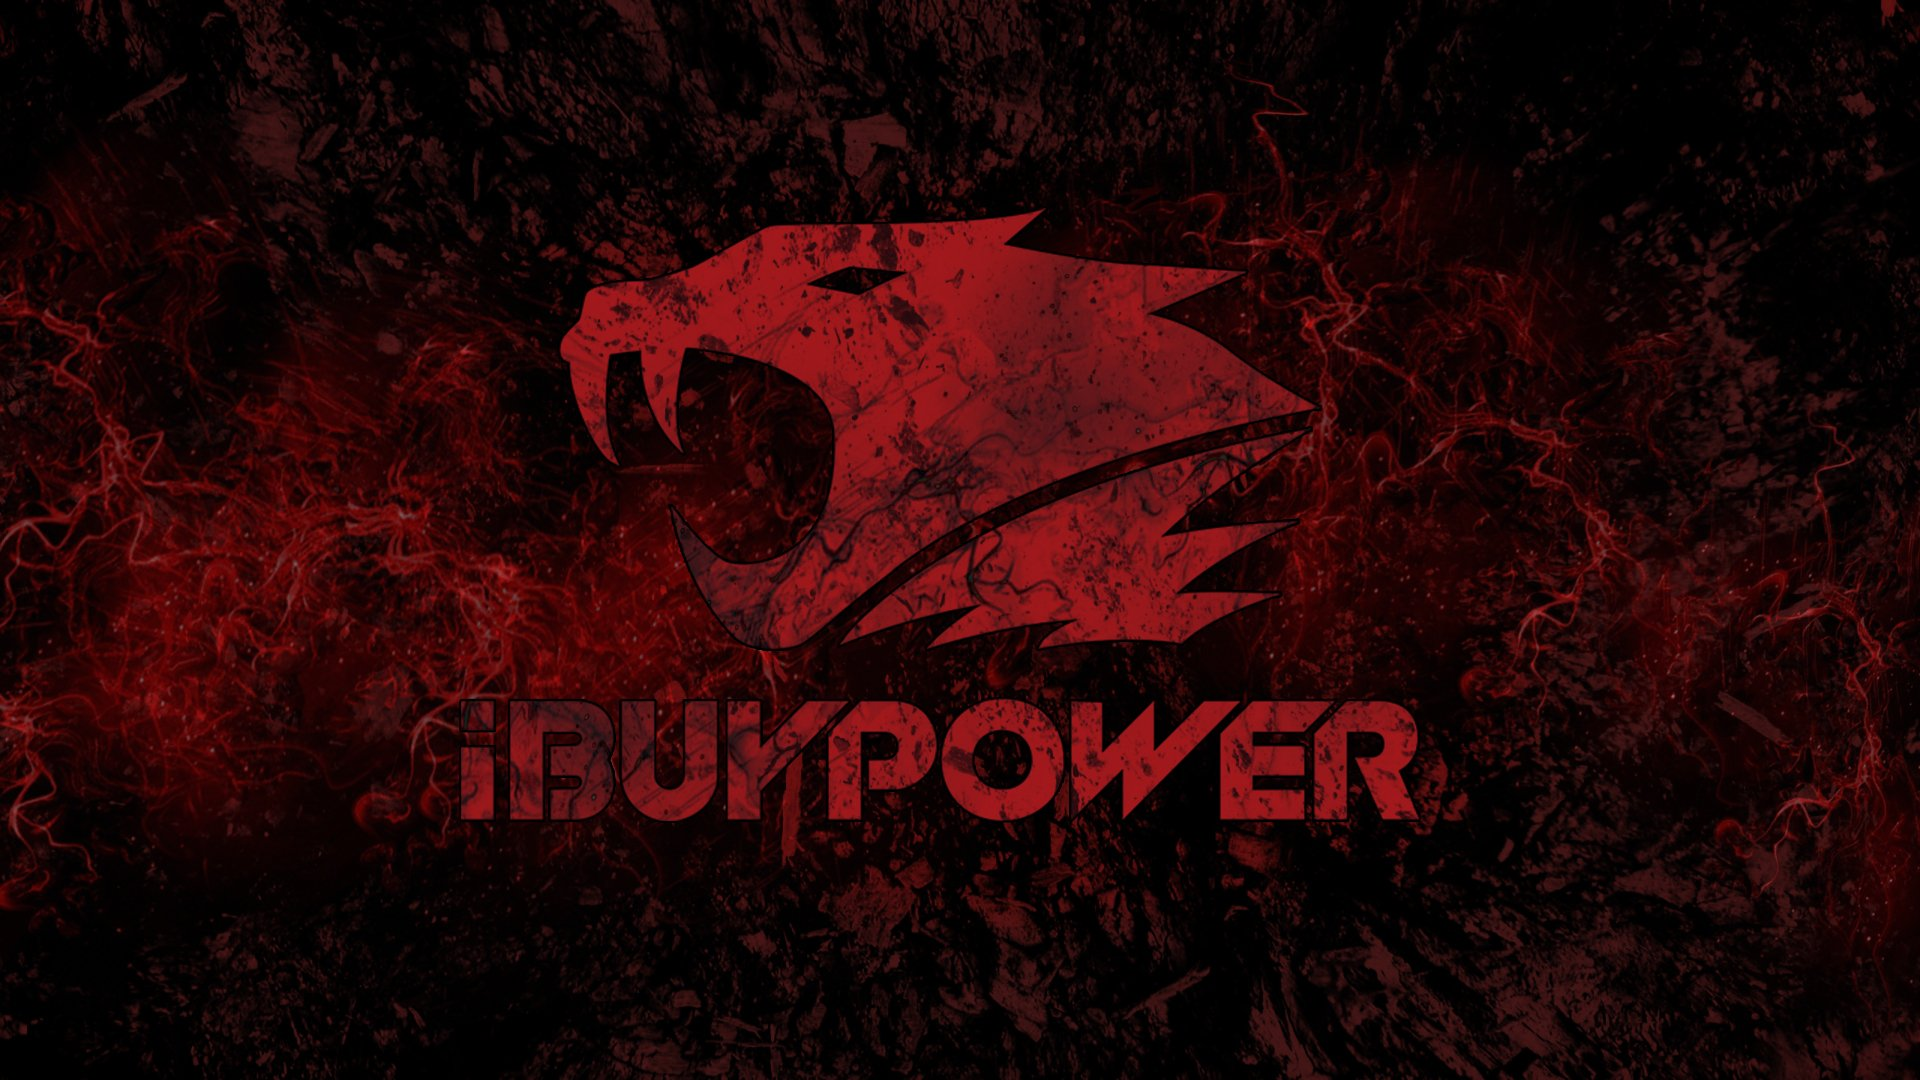 ibuypower Wallpapers HD Desktop and Mobile Backgrounds 1920x1080